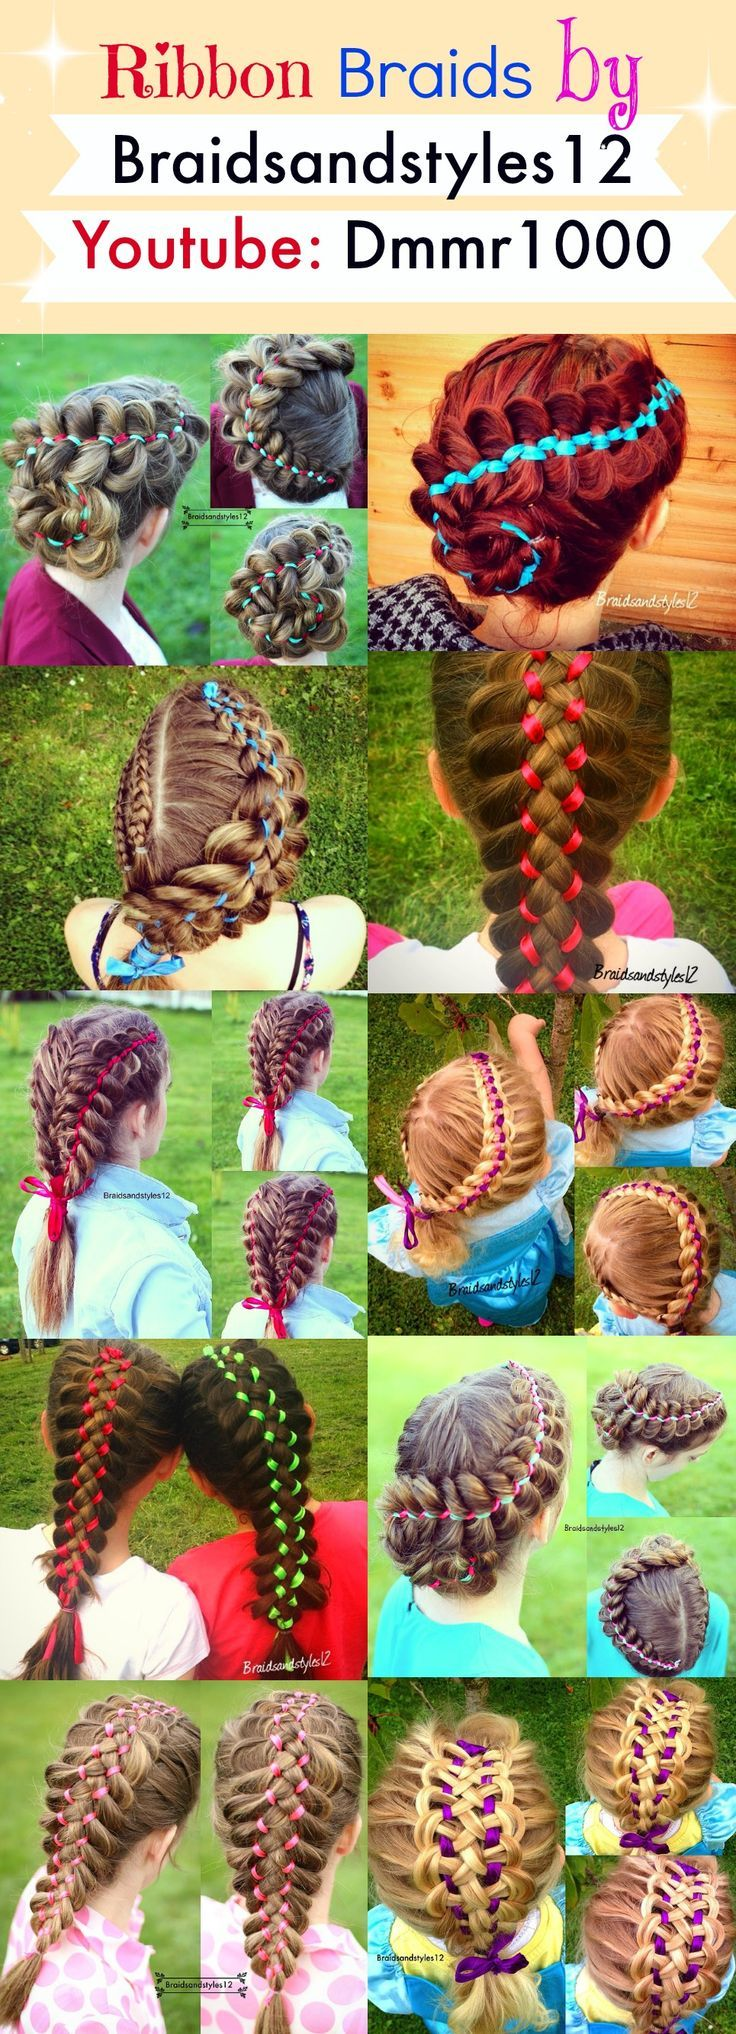 cool Braids with Ribbon by Braidsandstyles12 , DIY Braid Tutorials   Youtube: <a href...